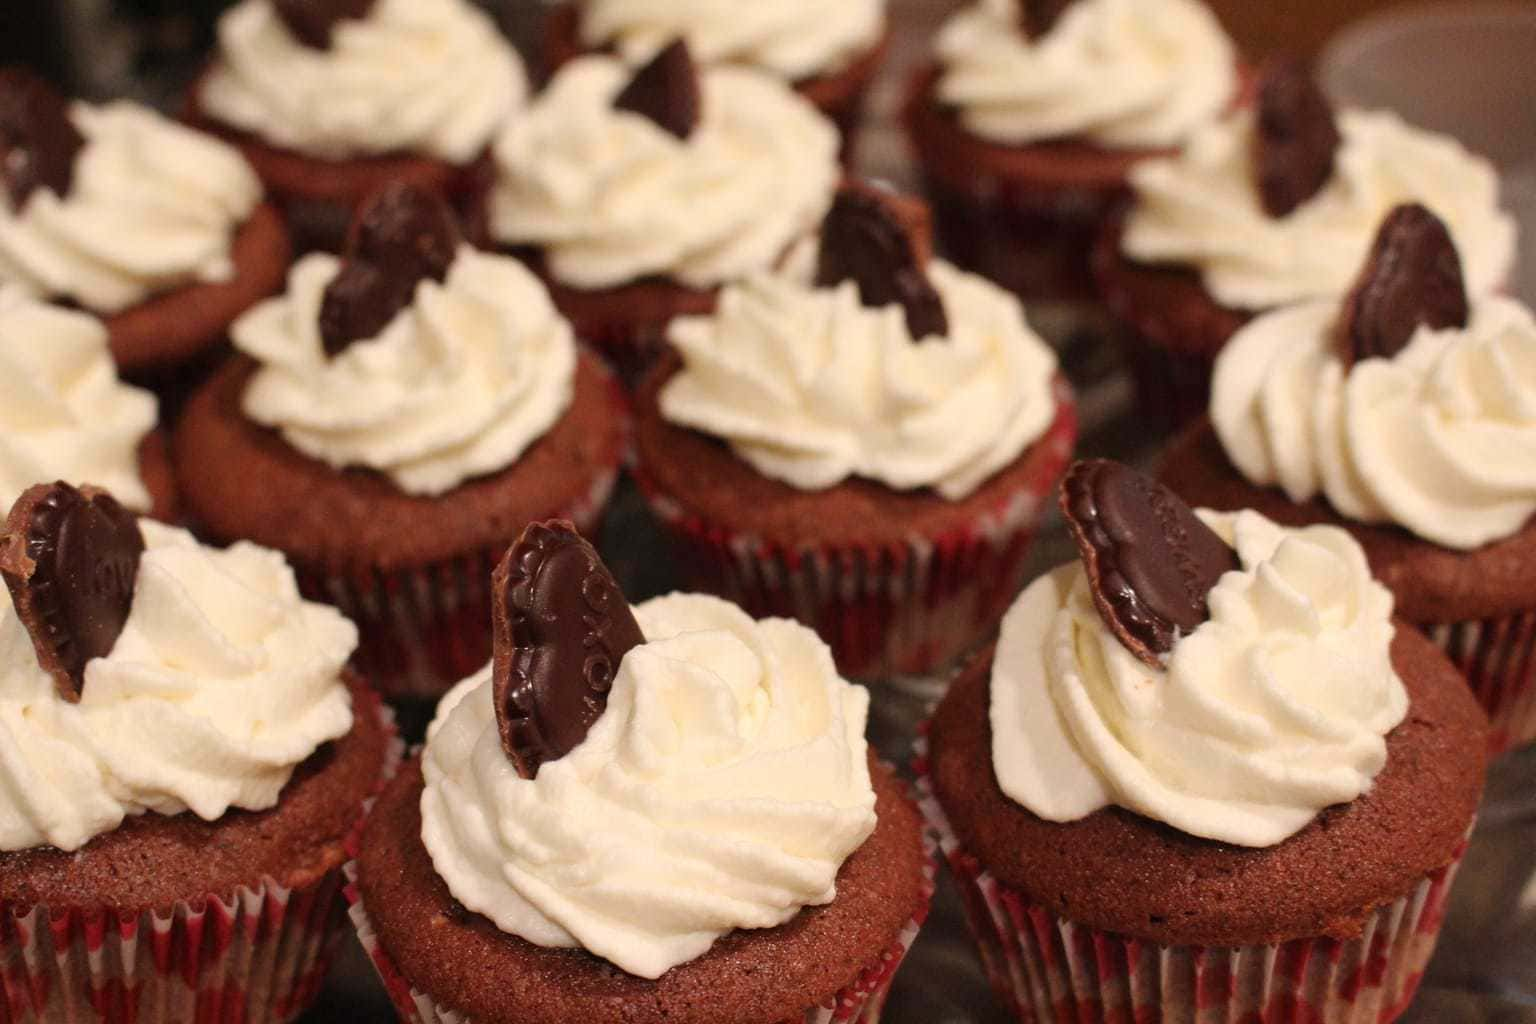 Who knew red wine and chocolate would be so spectacular in a cupcake? This easy recipe is perfect for your wine and chocolate tasting! When you're looking for a dessert for adults, this is the perfect choice. These cupcakes are so delicious!